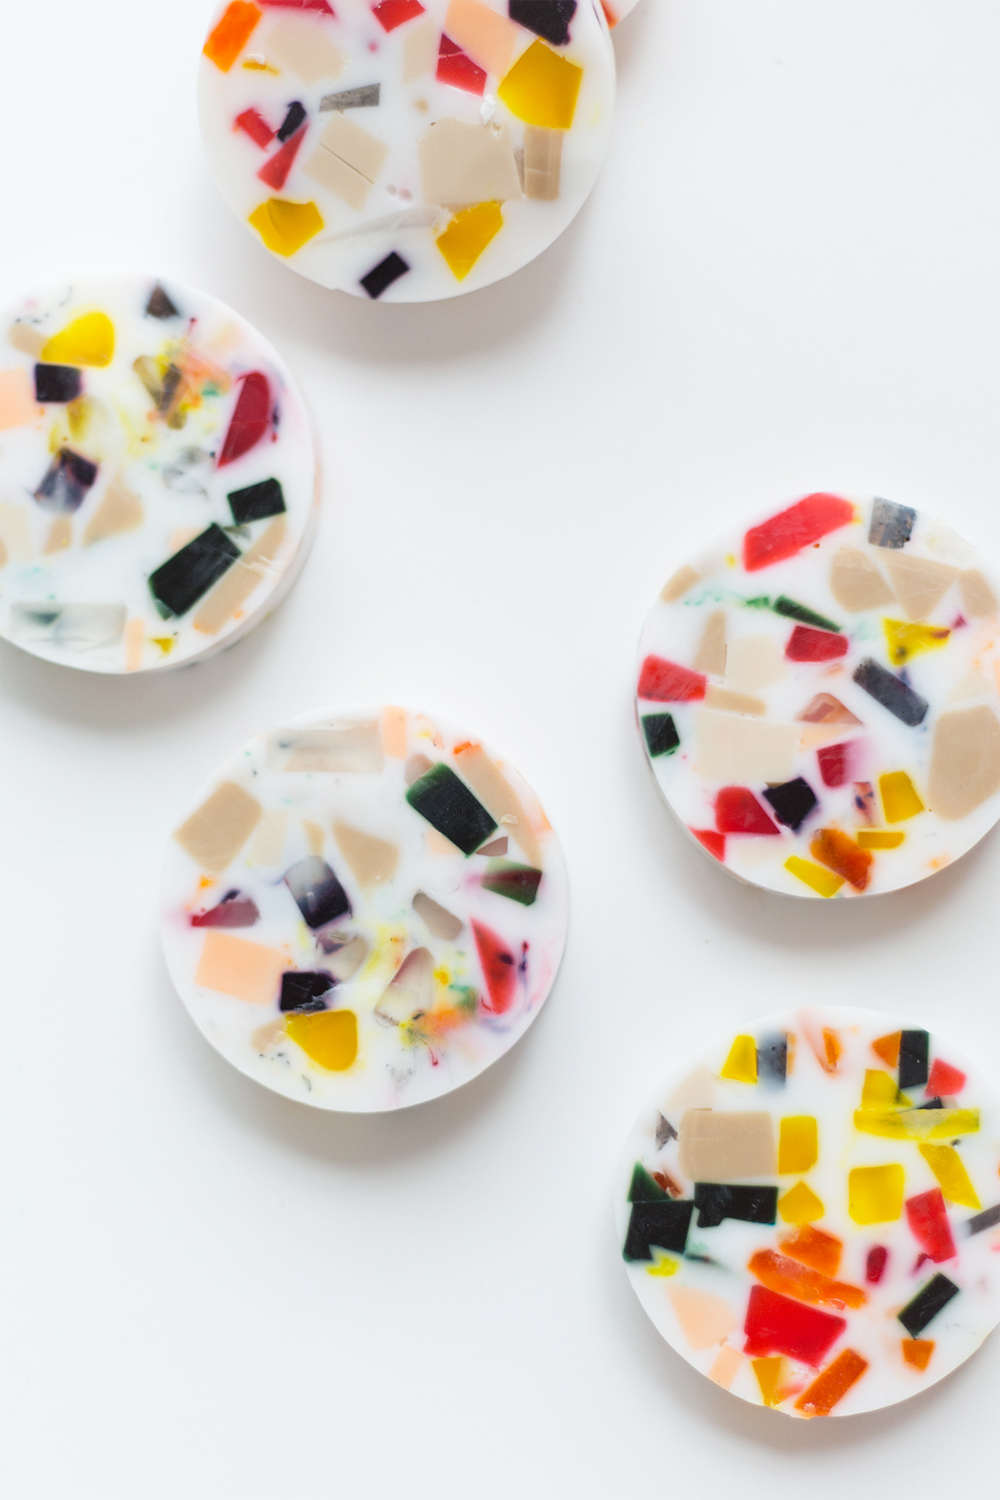 The perfect Christmas gift - DIY terrazzo style soap | Aliz's Wonderland